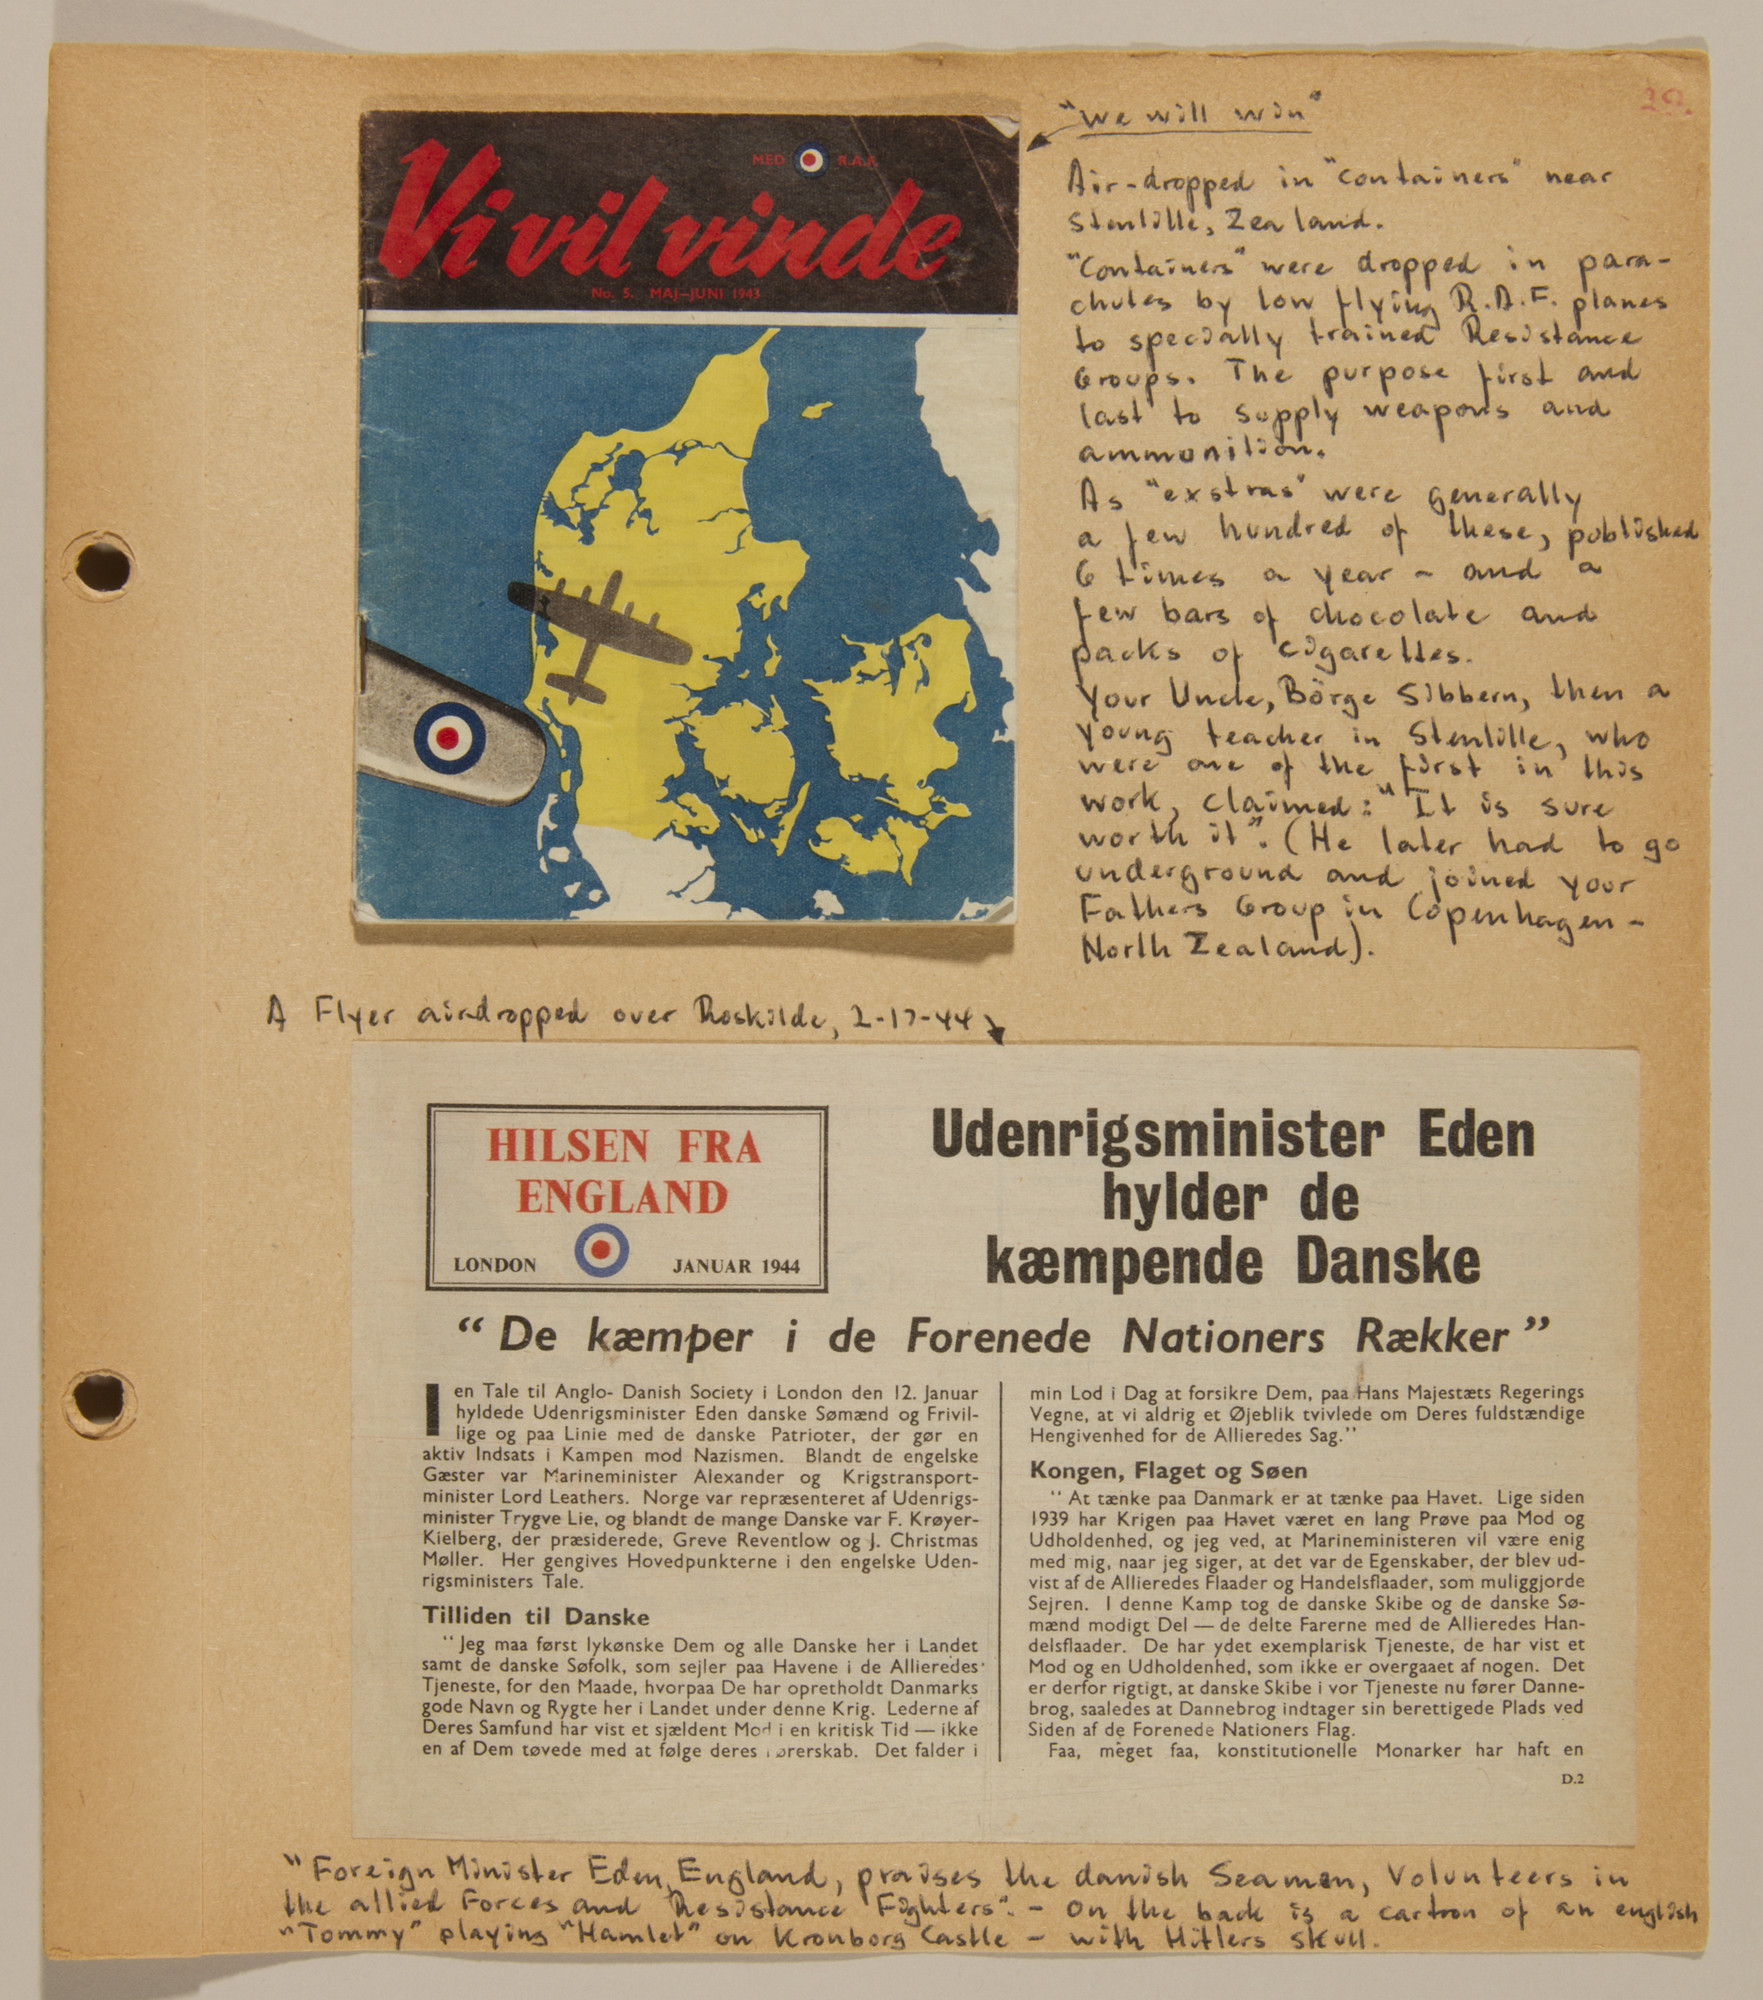 Page from volume four of a set of scrapbooks compiled by Bjorn Sibbern, a Danish policeman and resistance member, documenting the German occupation of Denmark.  This page contains two British flyers that were air-dropped over Denmark.